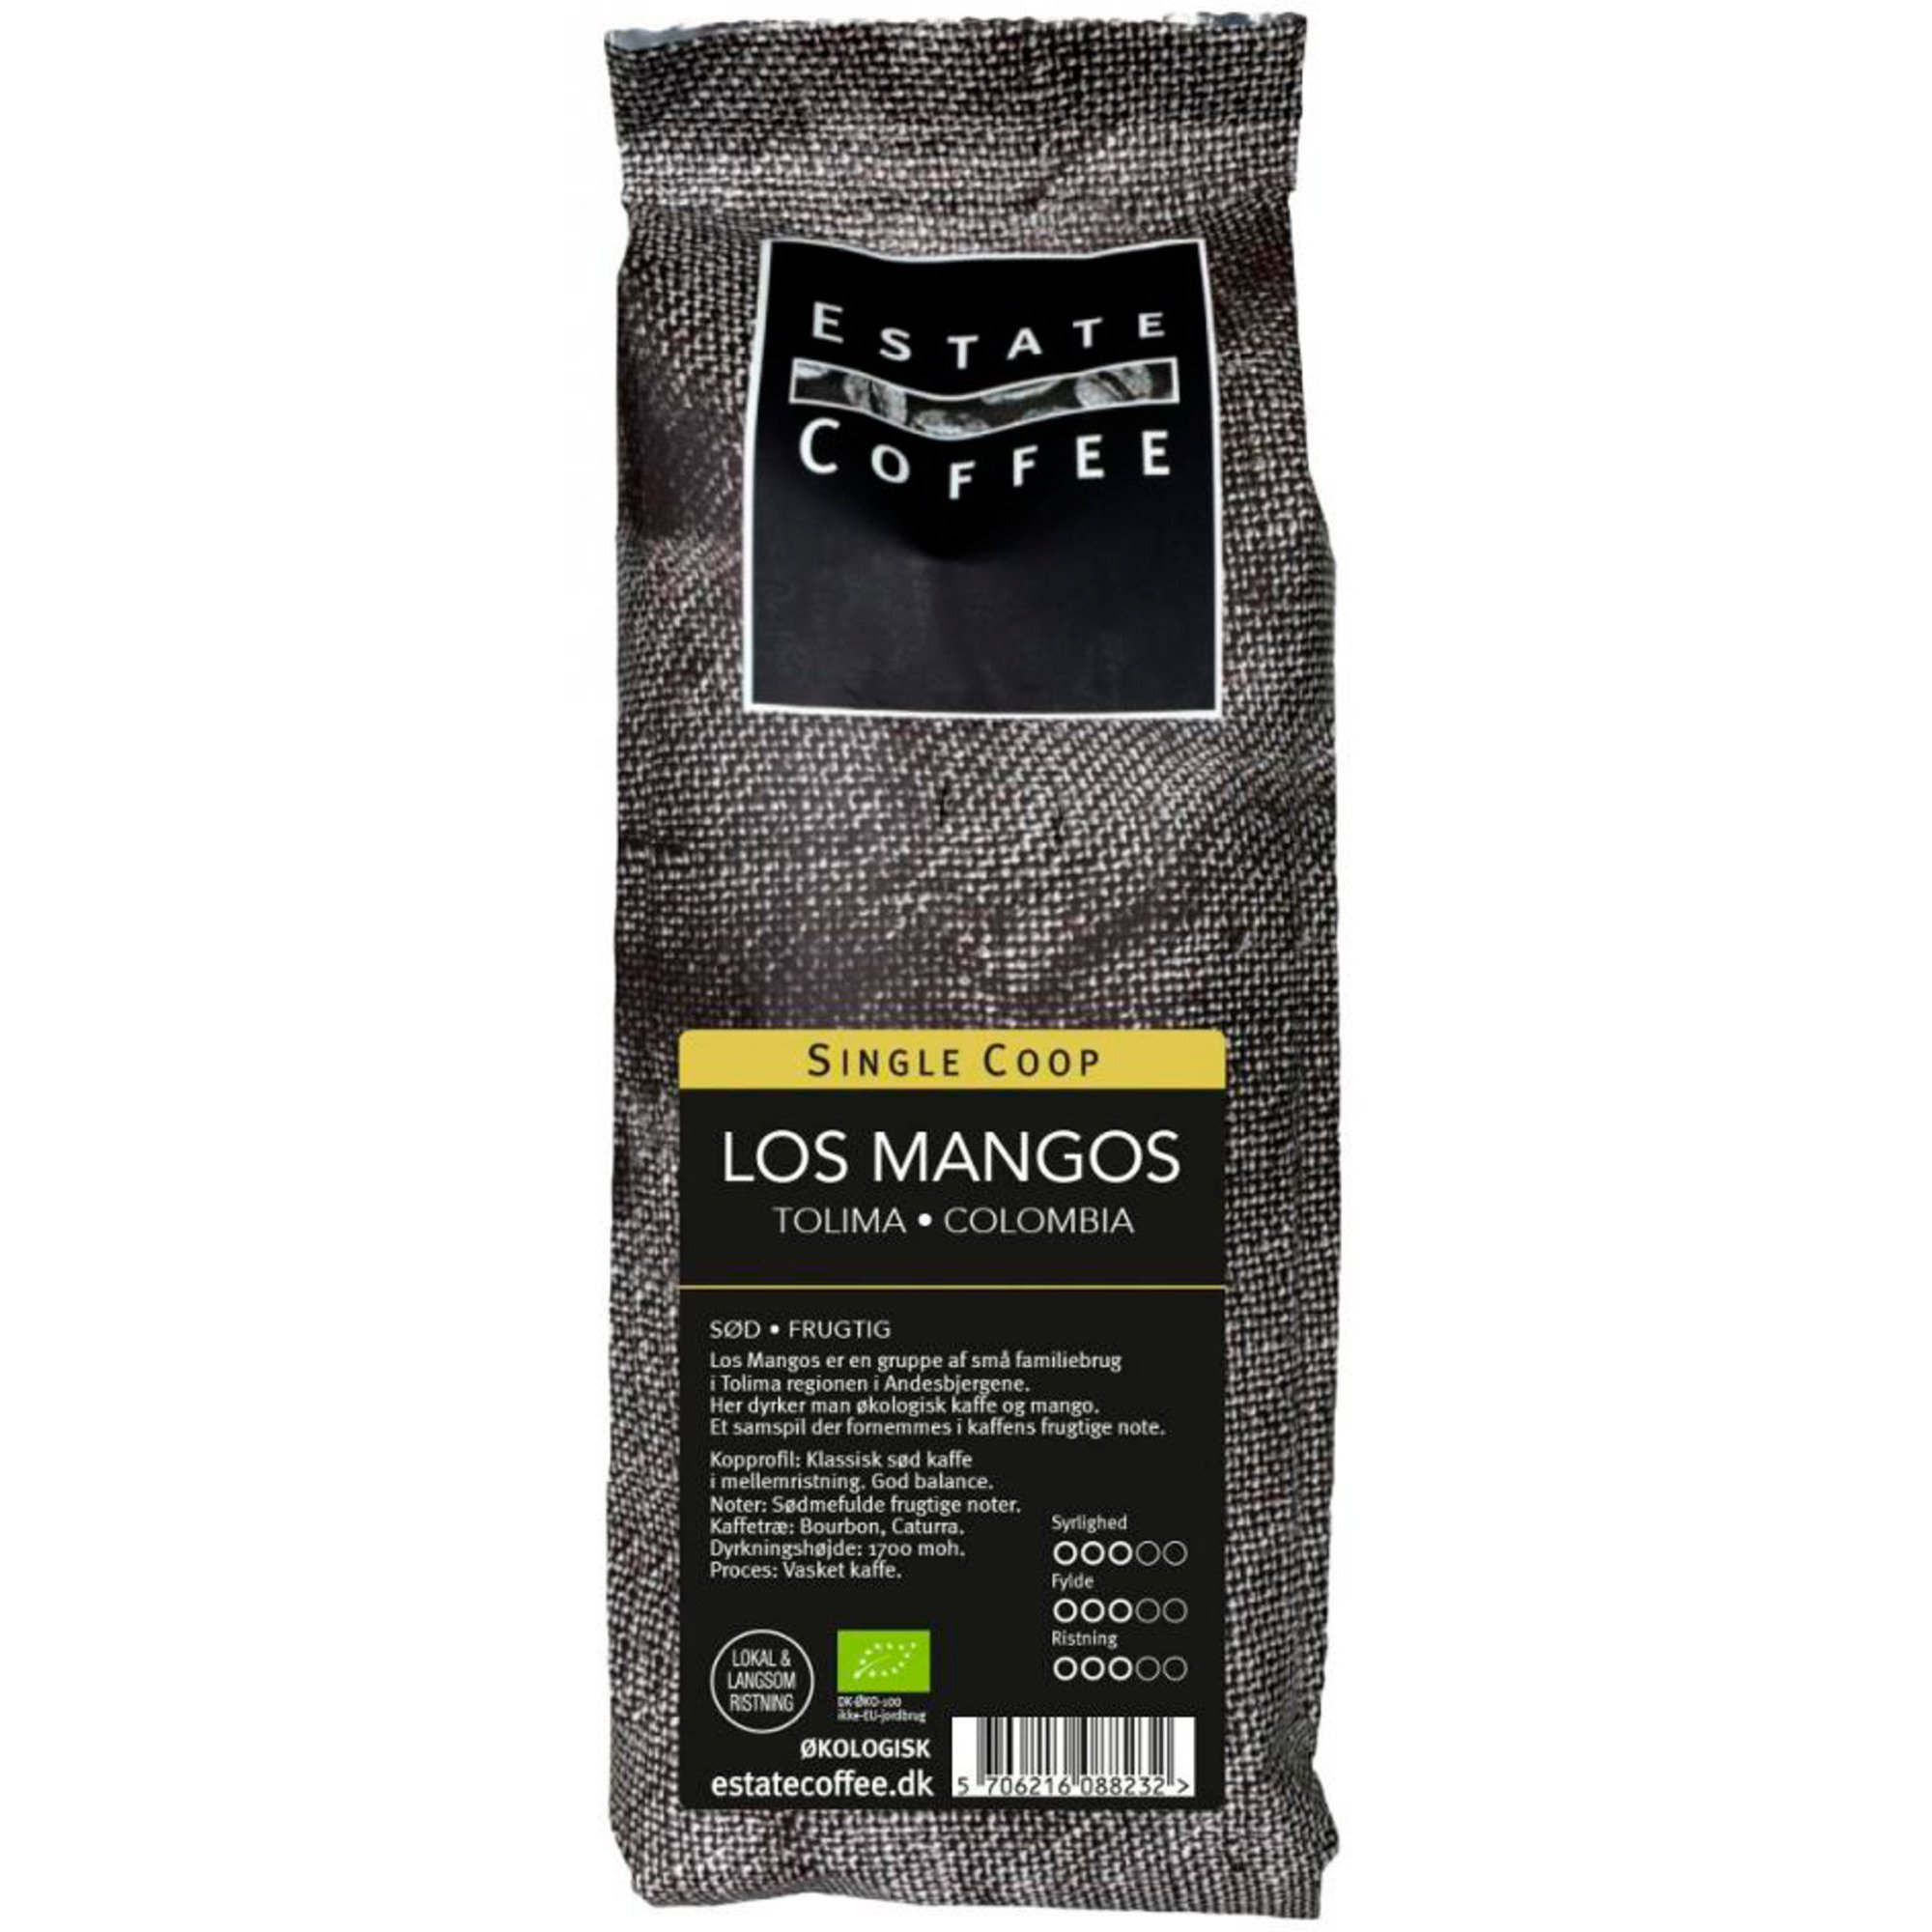 Estate Coffee Espresso Los Mangos